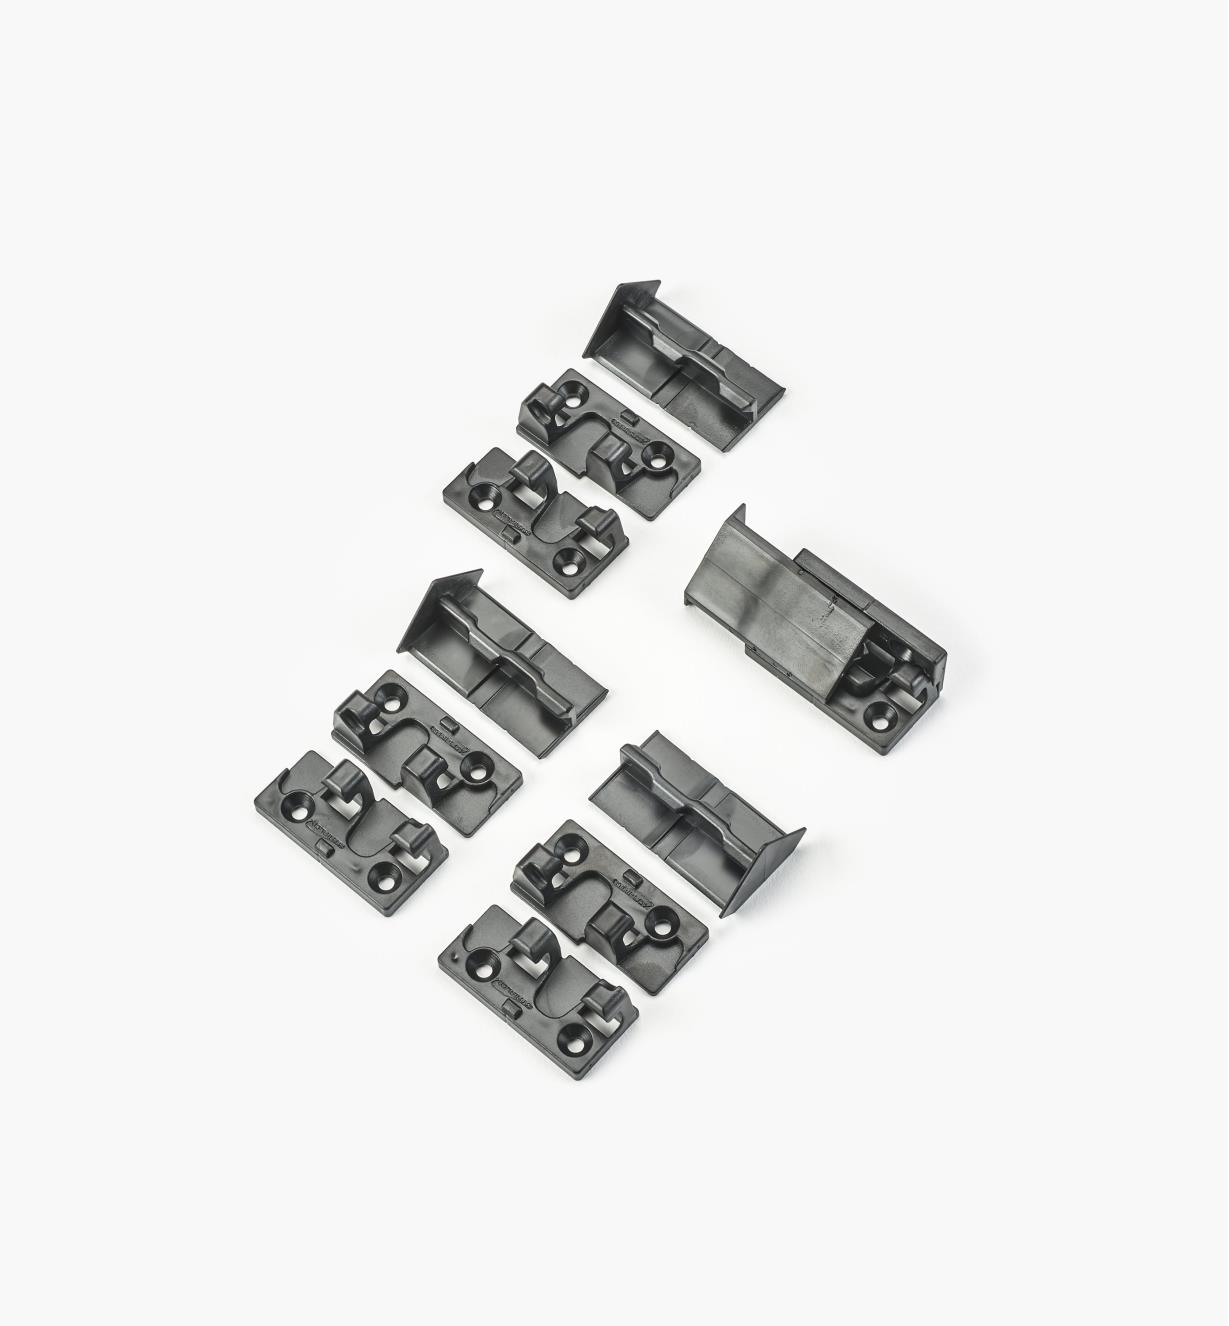 00S0189 - Small Striplox 90° Panel Connector, pkg. of 4